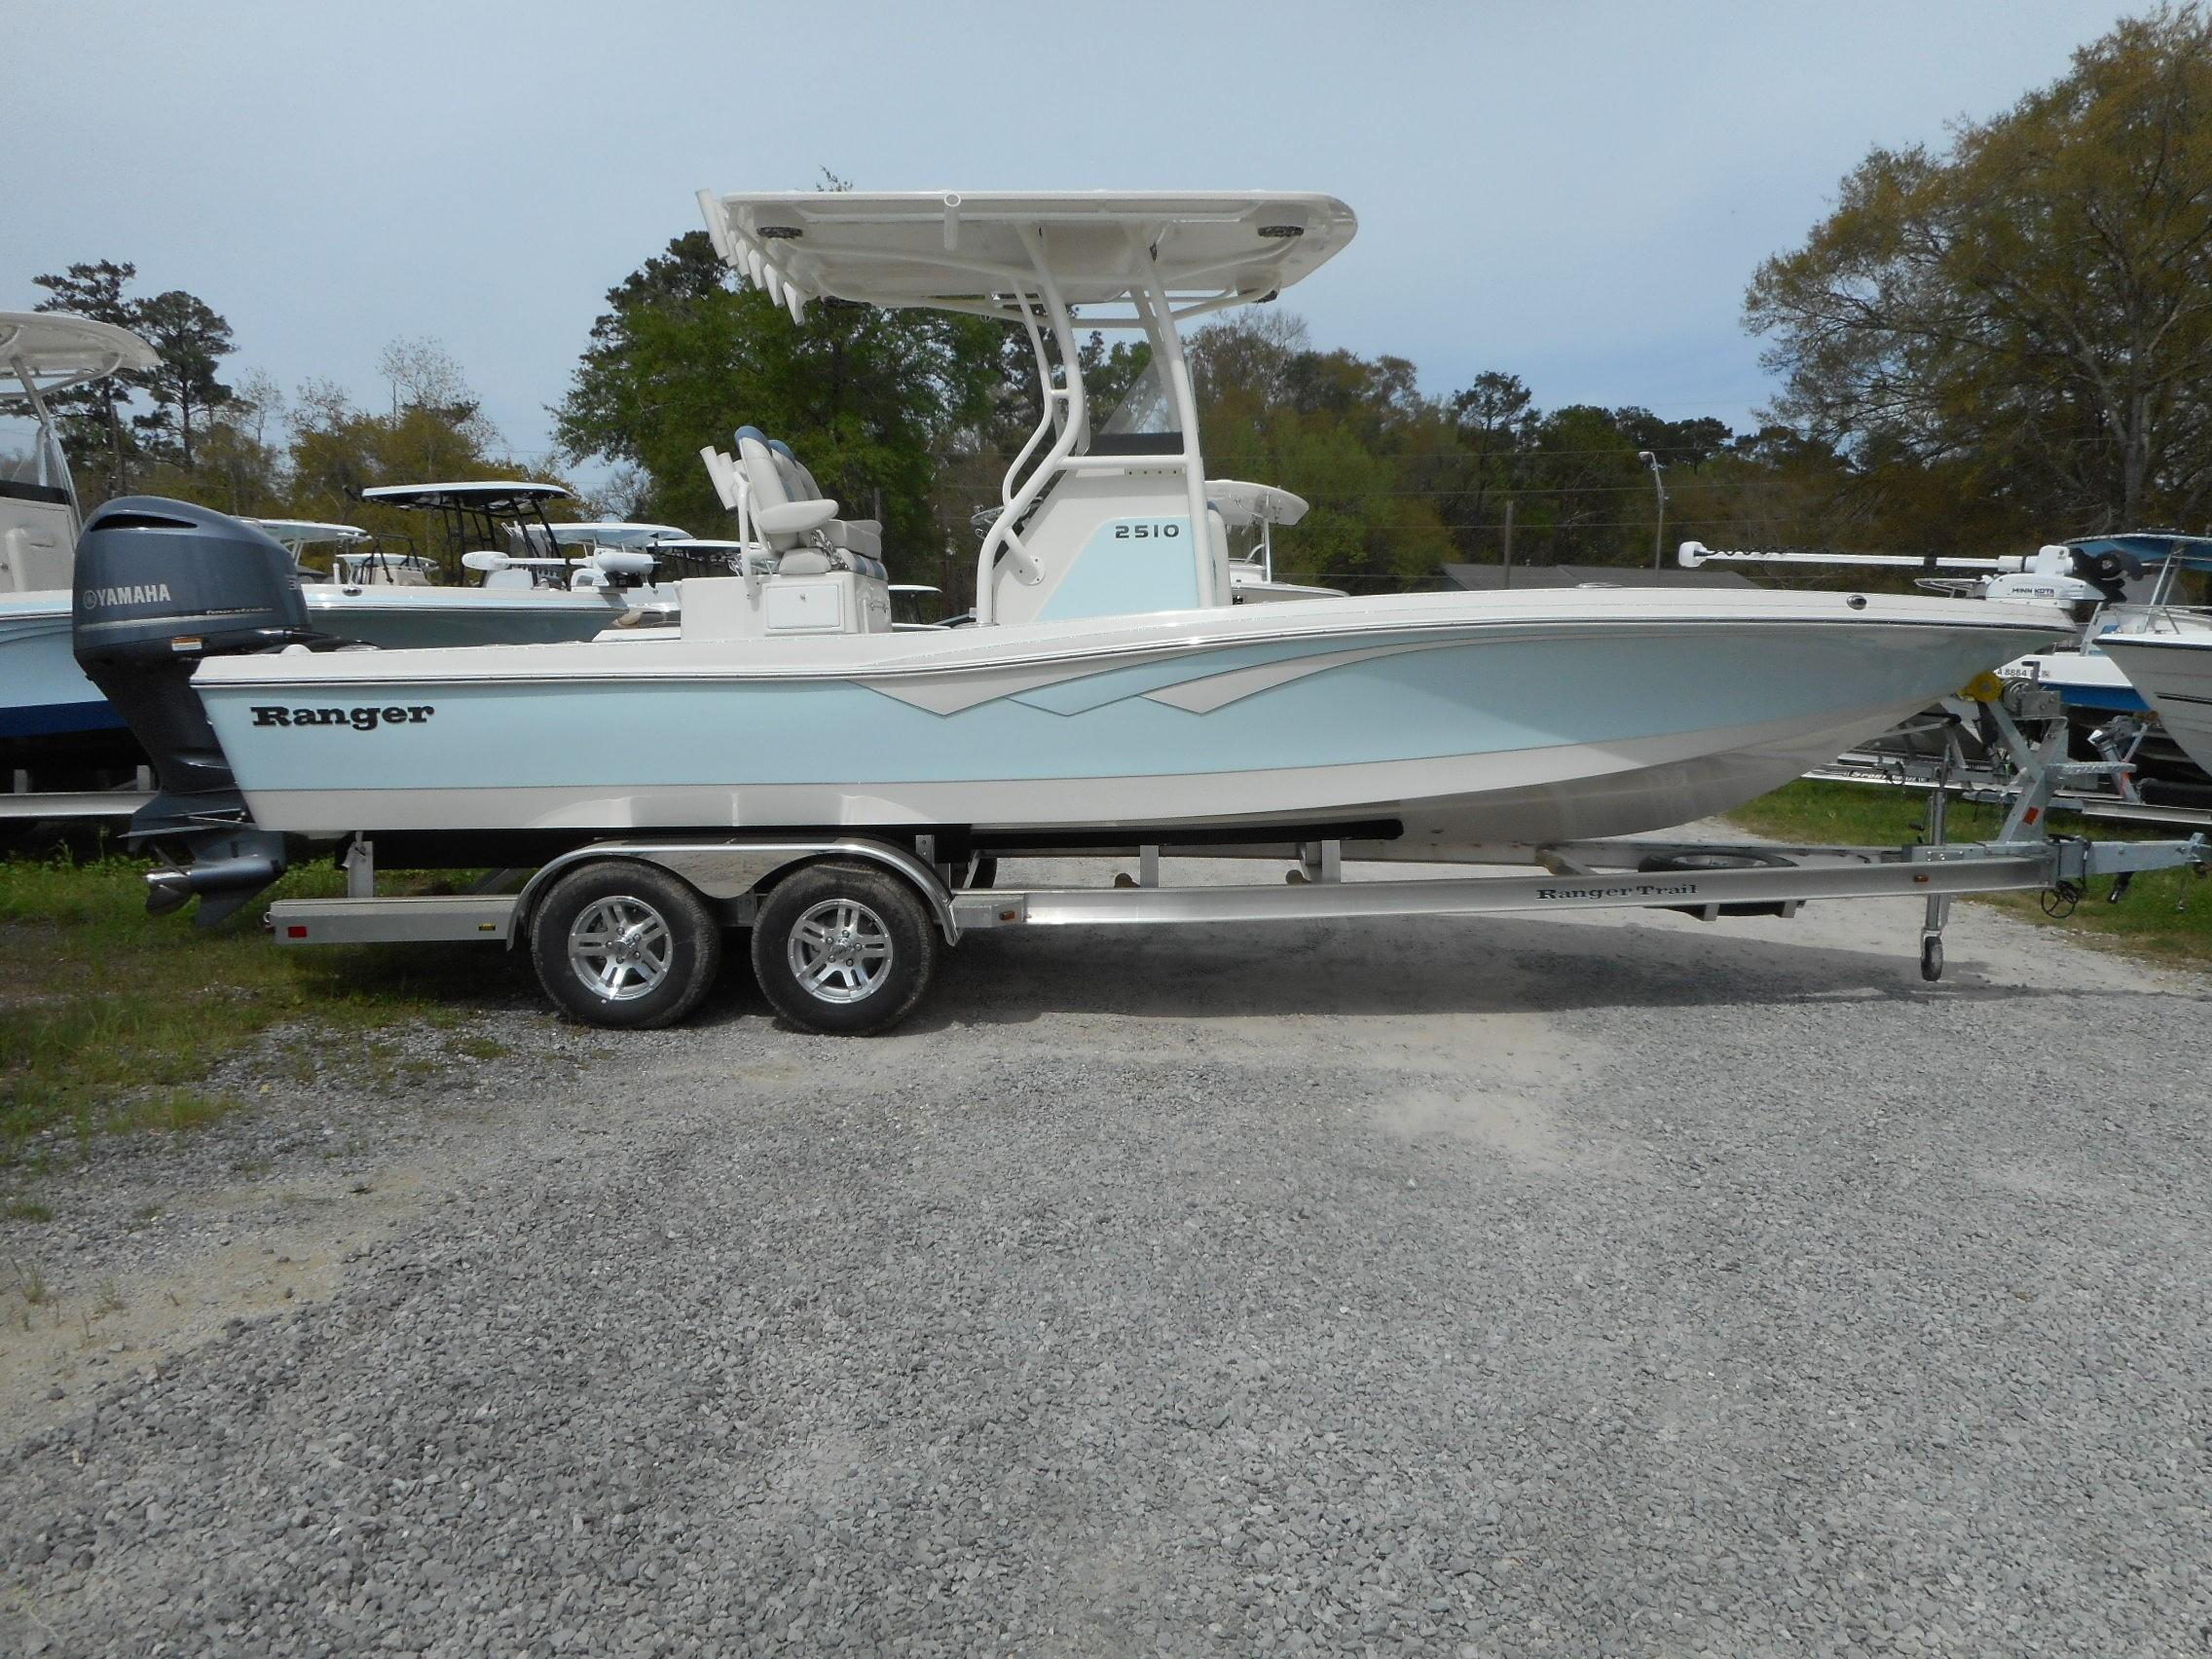 Ranger Boats For Sale - BOAT STUF in United States